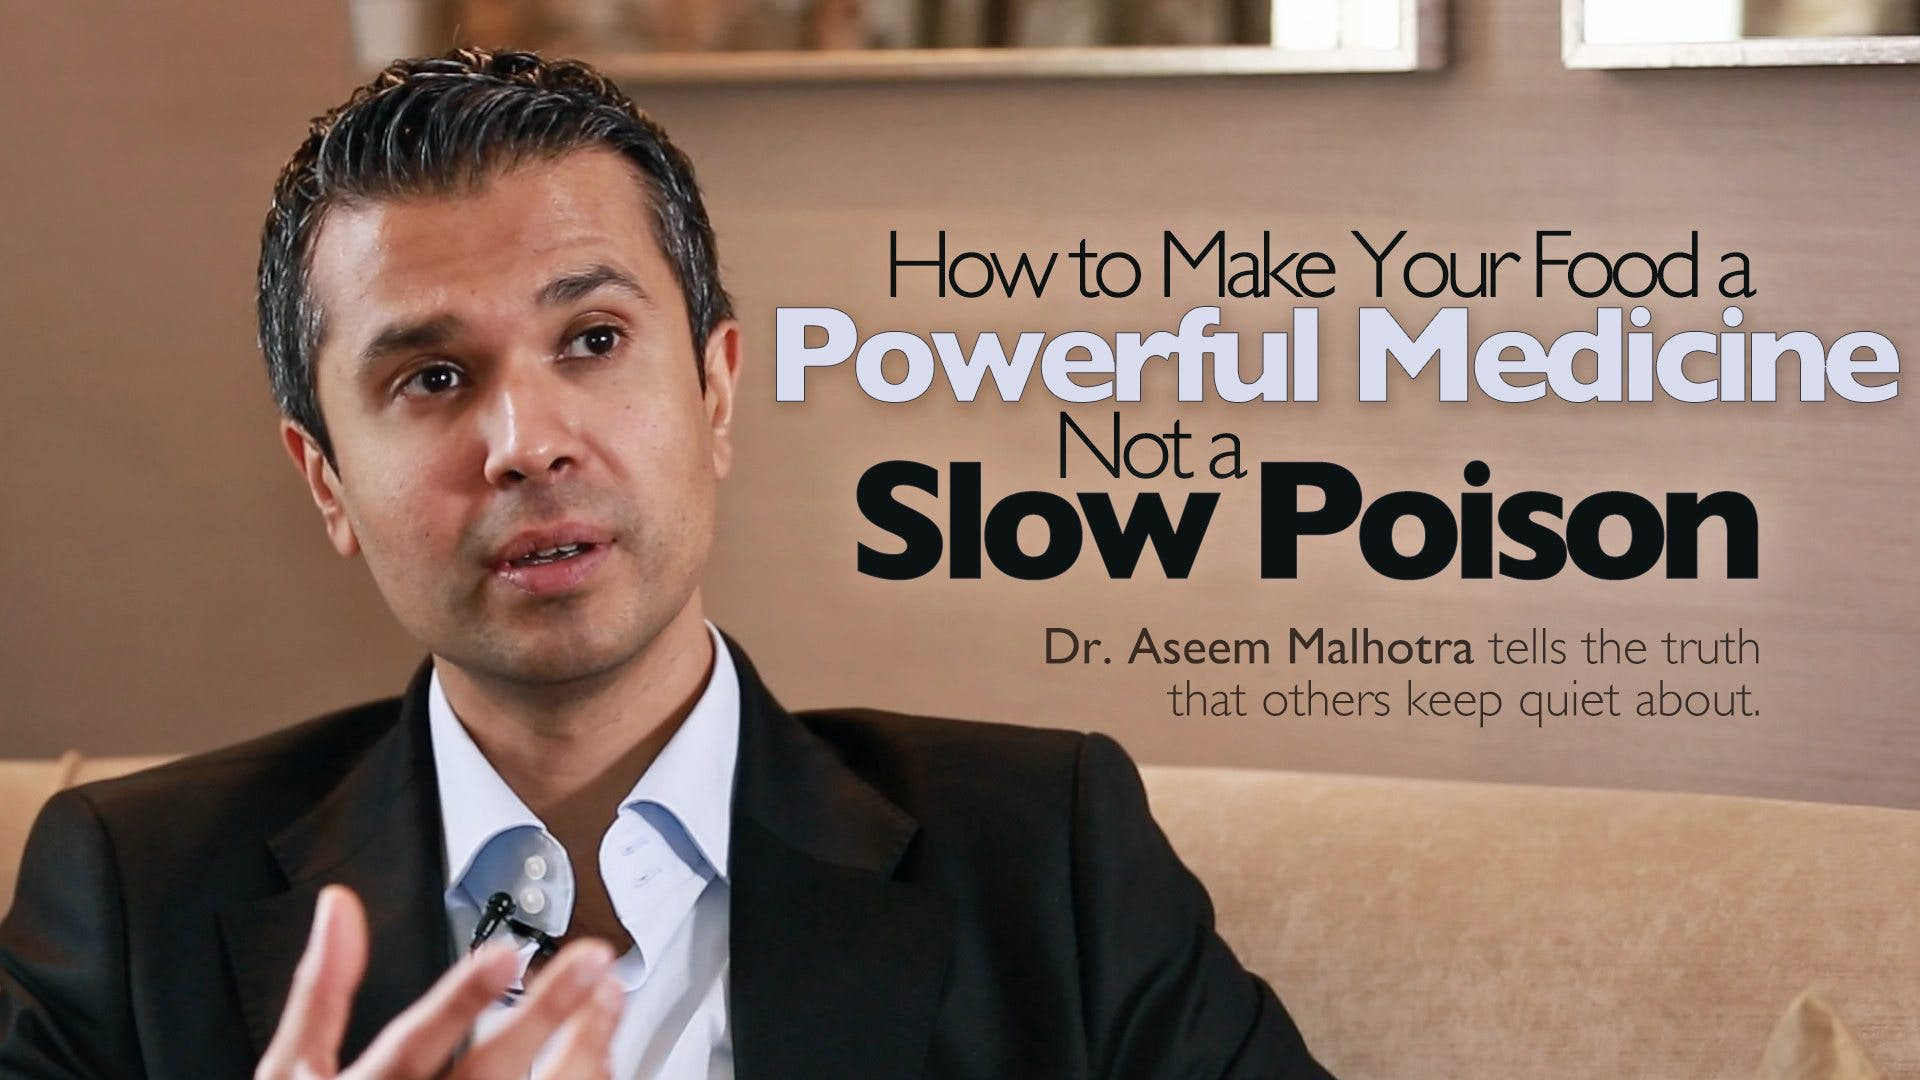 How to make your food a powerful medicine, not a slow poison